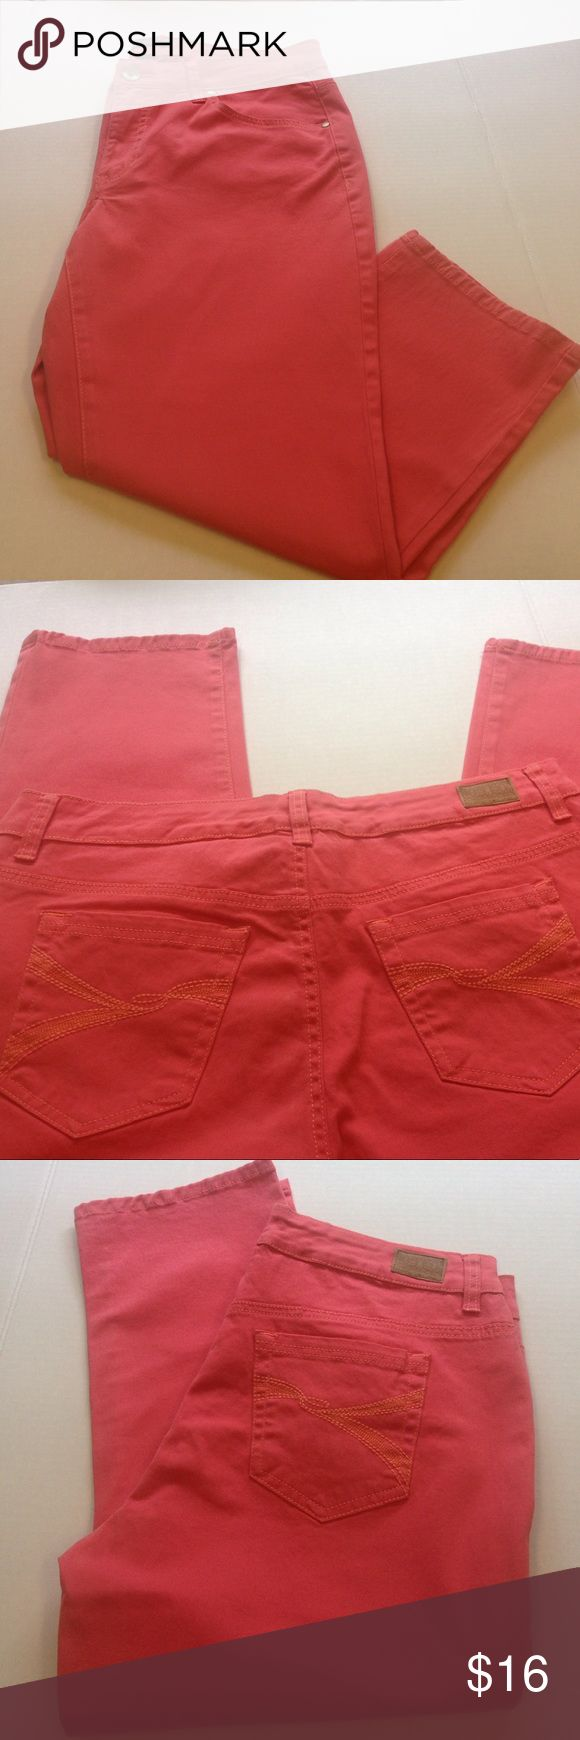 Bandolino Coral Capris Bandolino coral capris// size 10// inseam measures 22 inches and rise measures 9 inches// 98% cotton and 2% spandex Bandolino Pants Capris